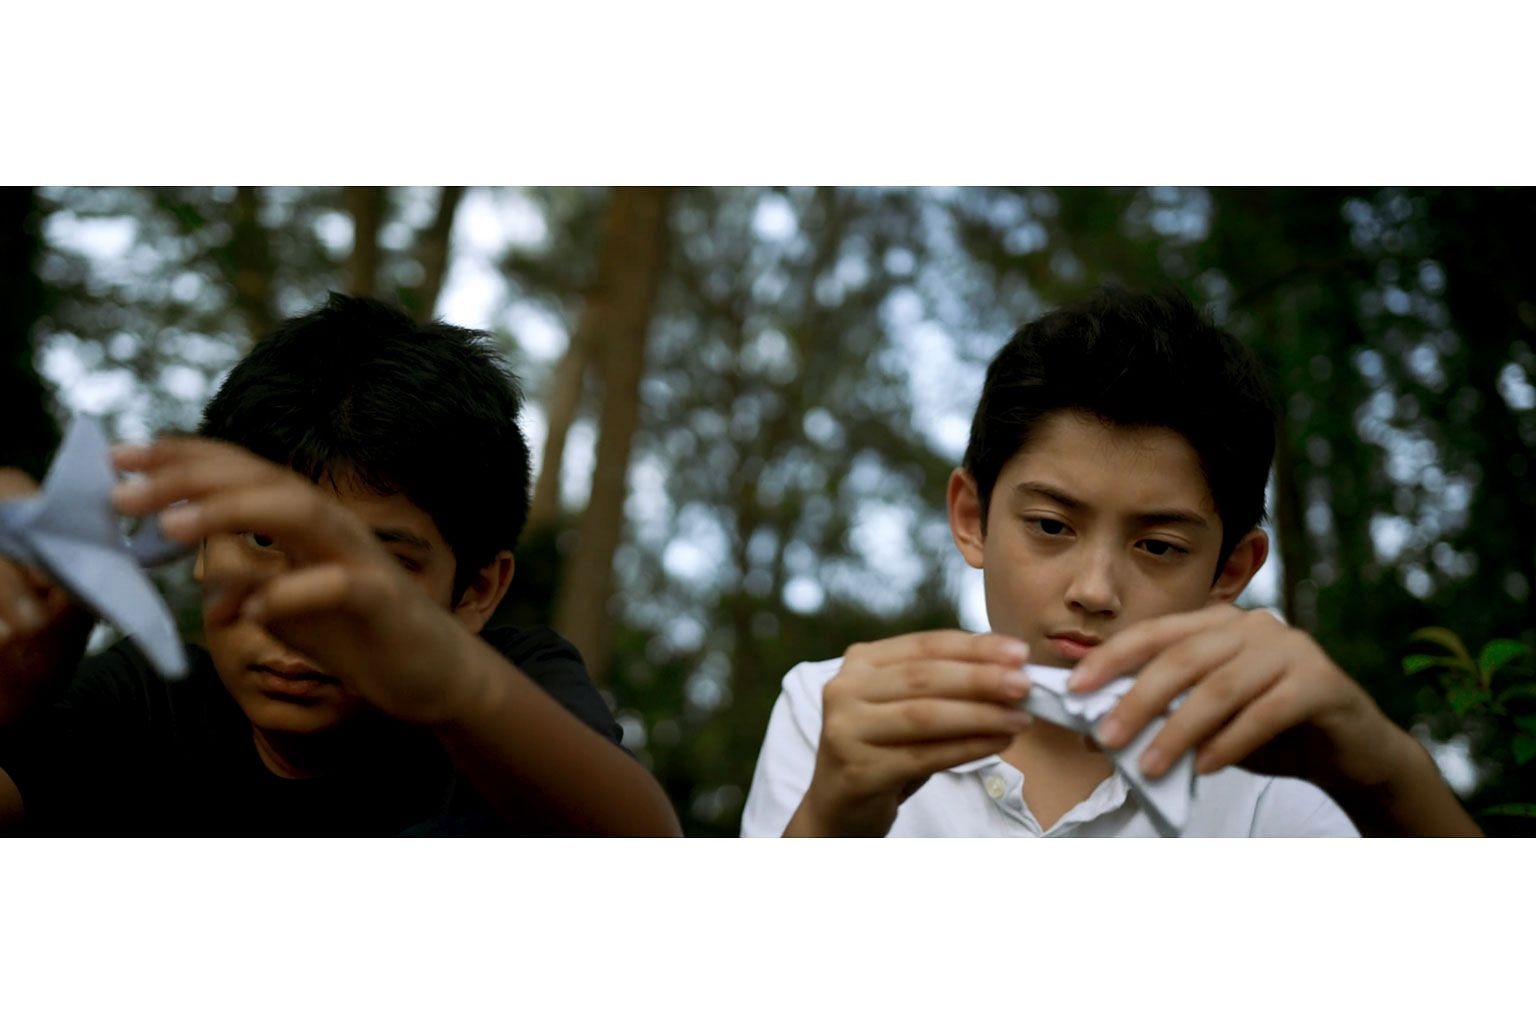 Dharshan Nathan (far left) and Kaiden Quinn (left) in a still from We Will Burn, a short film by Amanda Tan, based on Ng Yi-Sheng's poem The Audience. It will be one of eight short films screened at the Poetry Festival Singapore.